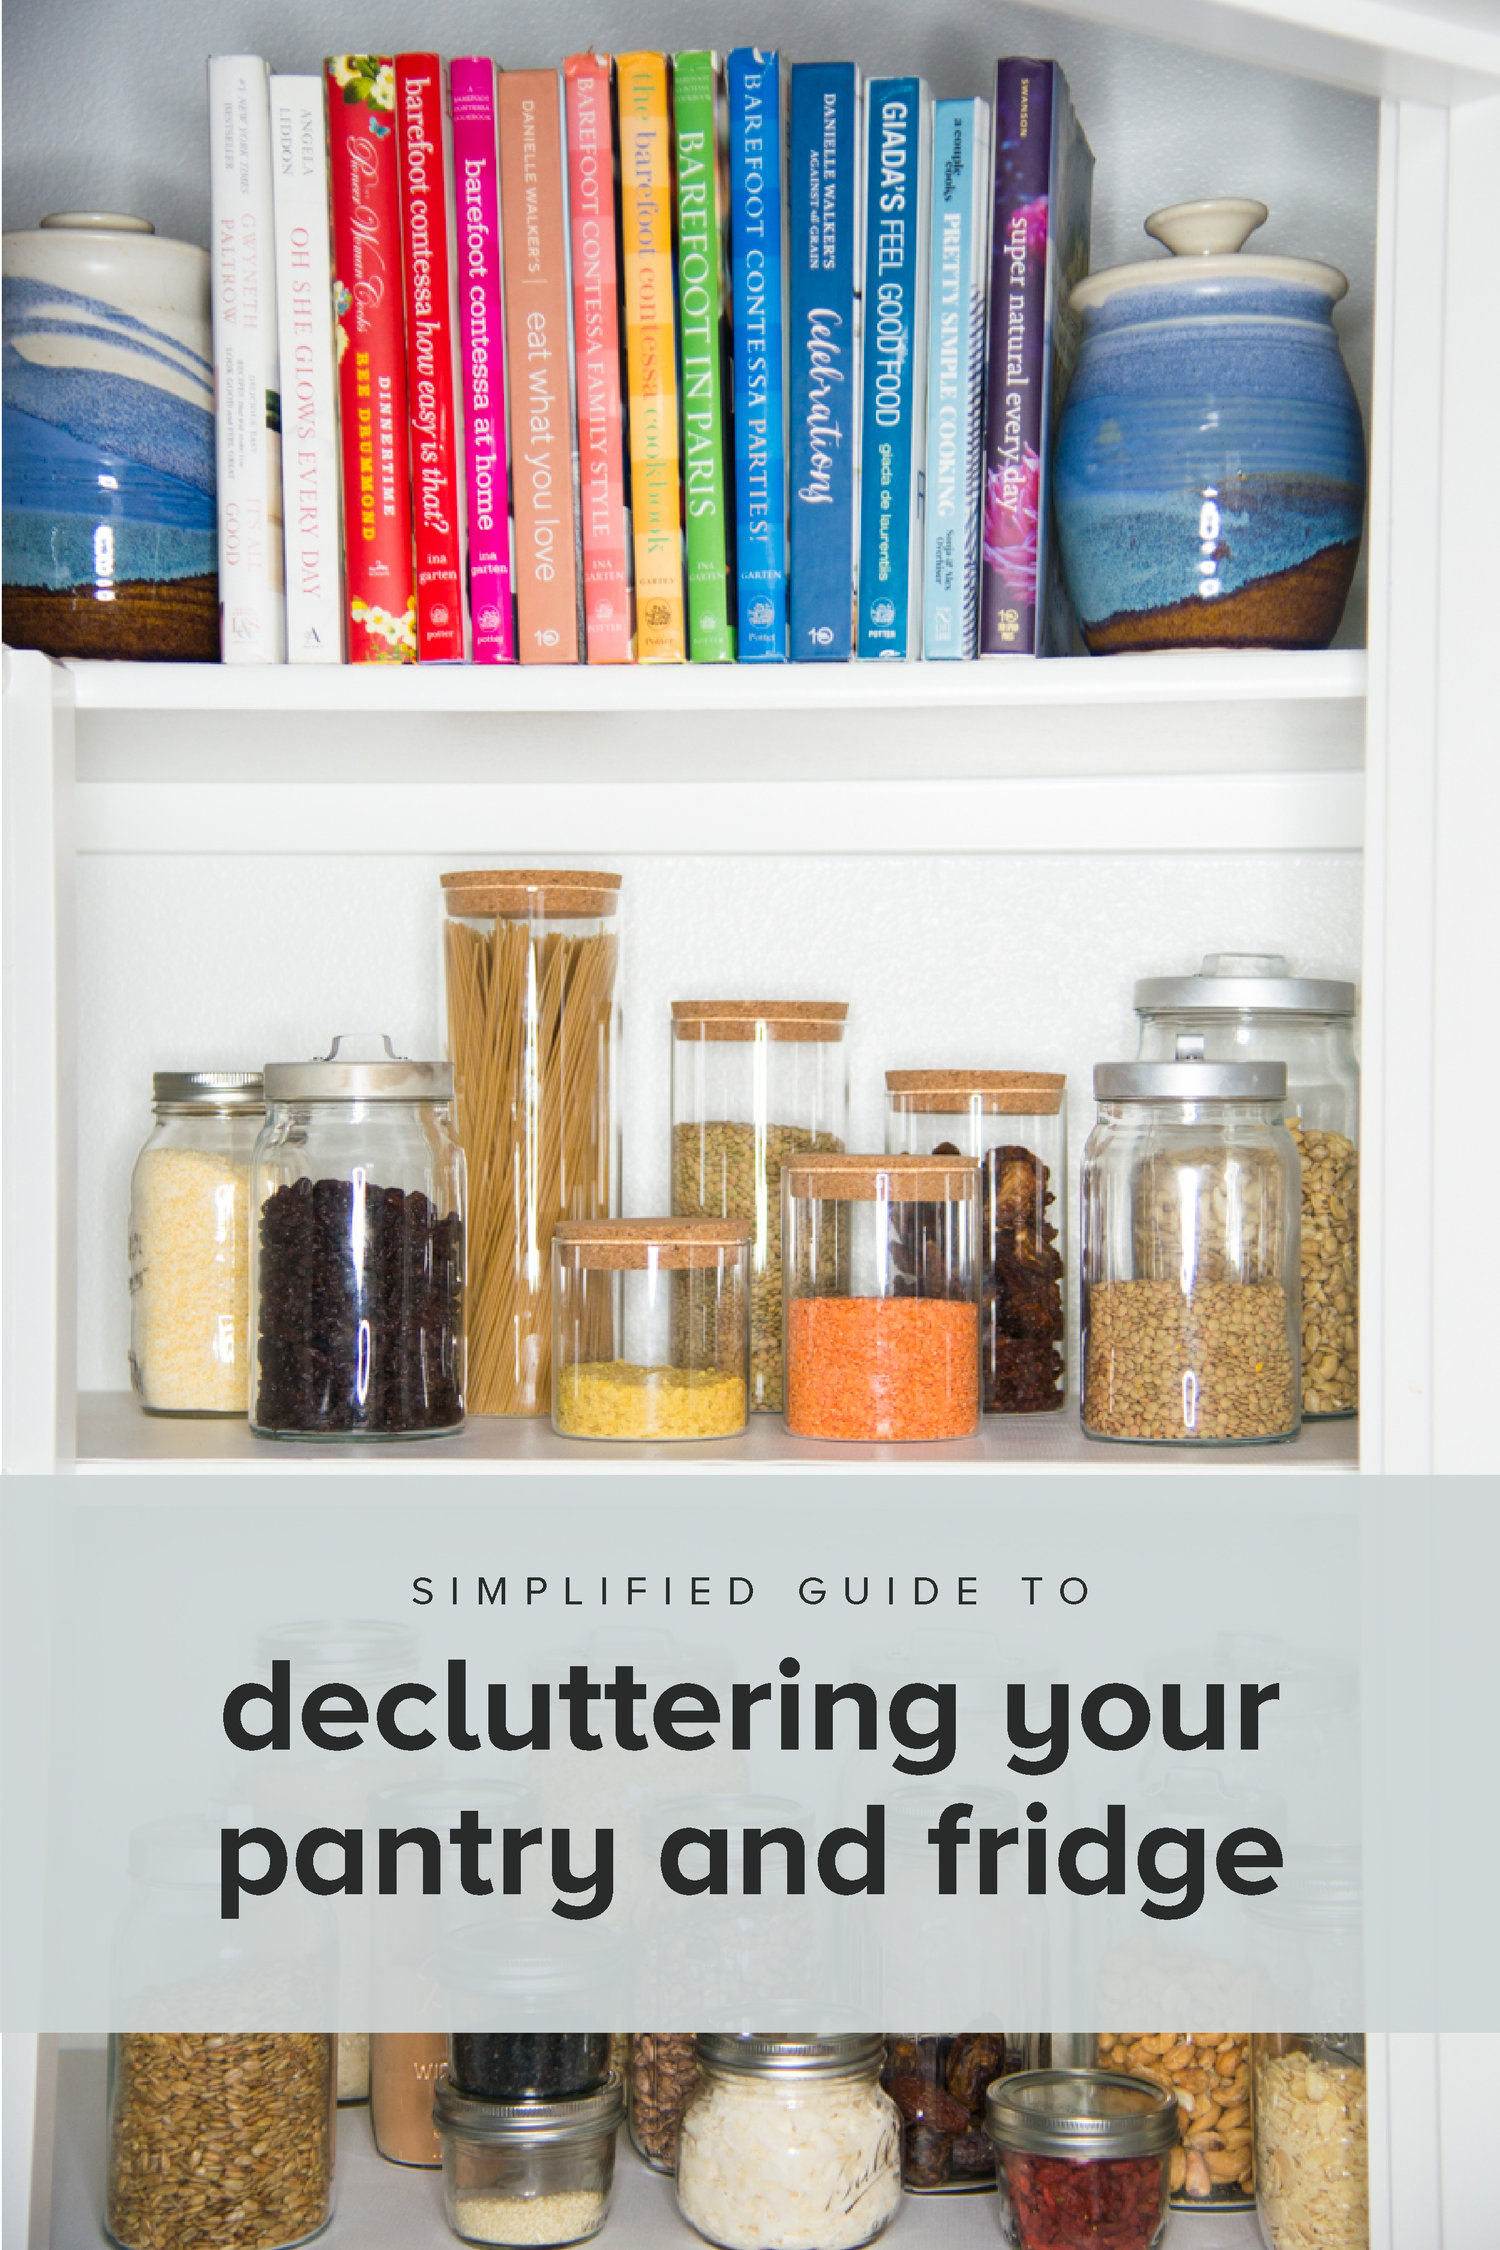 Simplified Guide to Decluttering Your Pantry & Fridge in 3